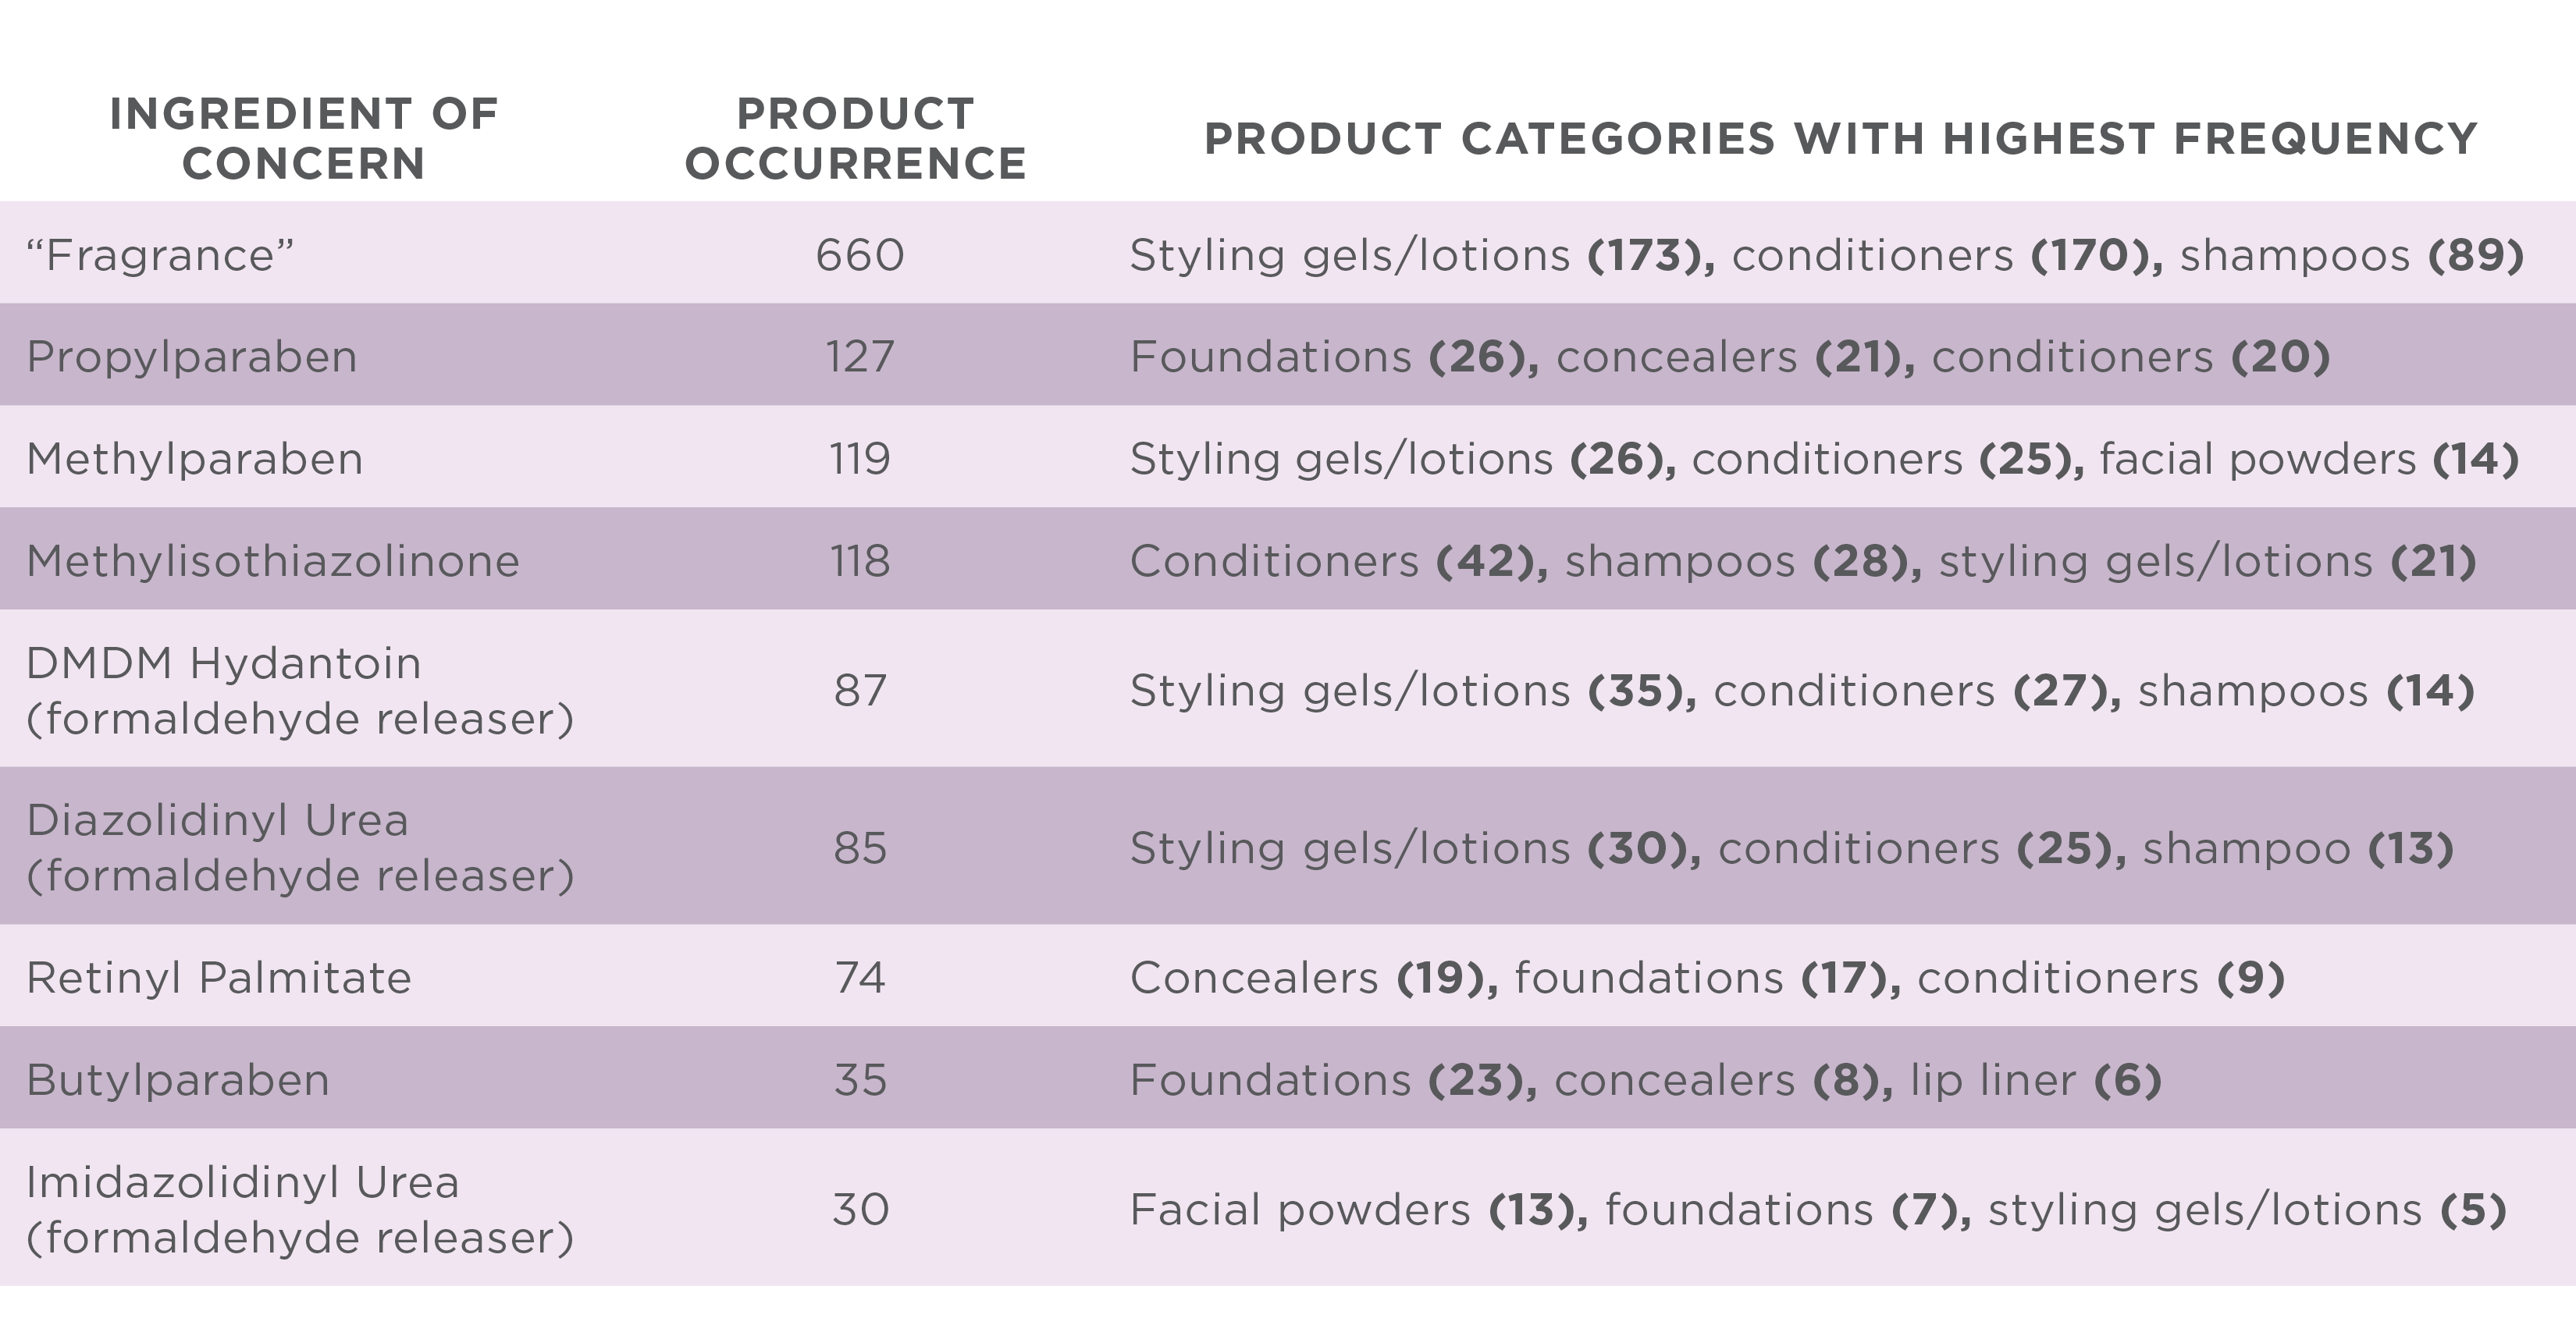 Table showing ingredients of concern and what product categories they appear in